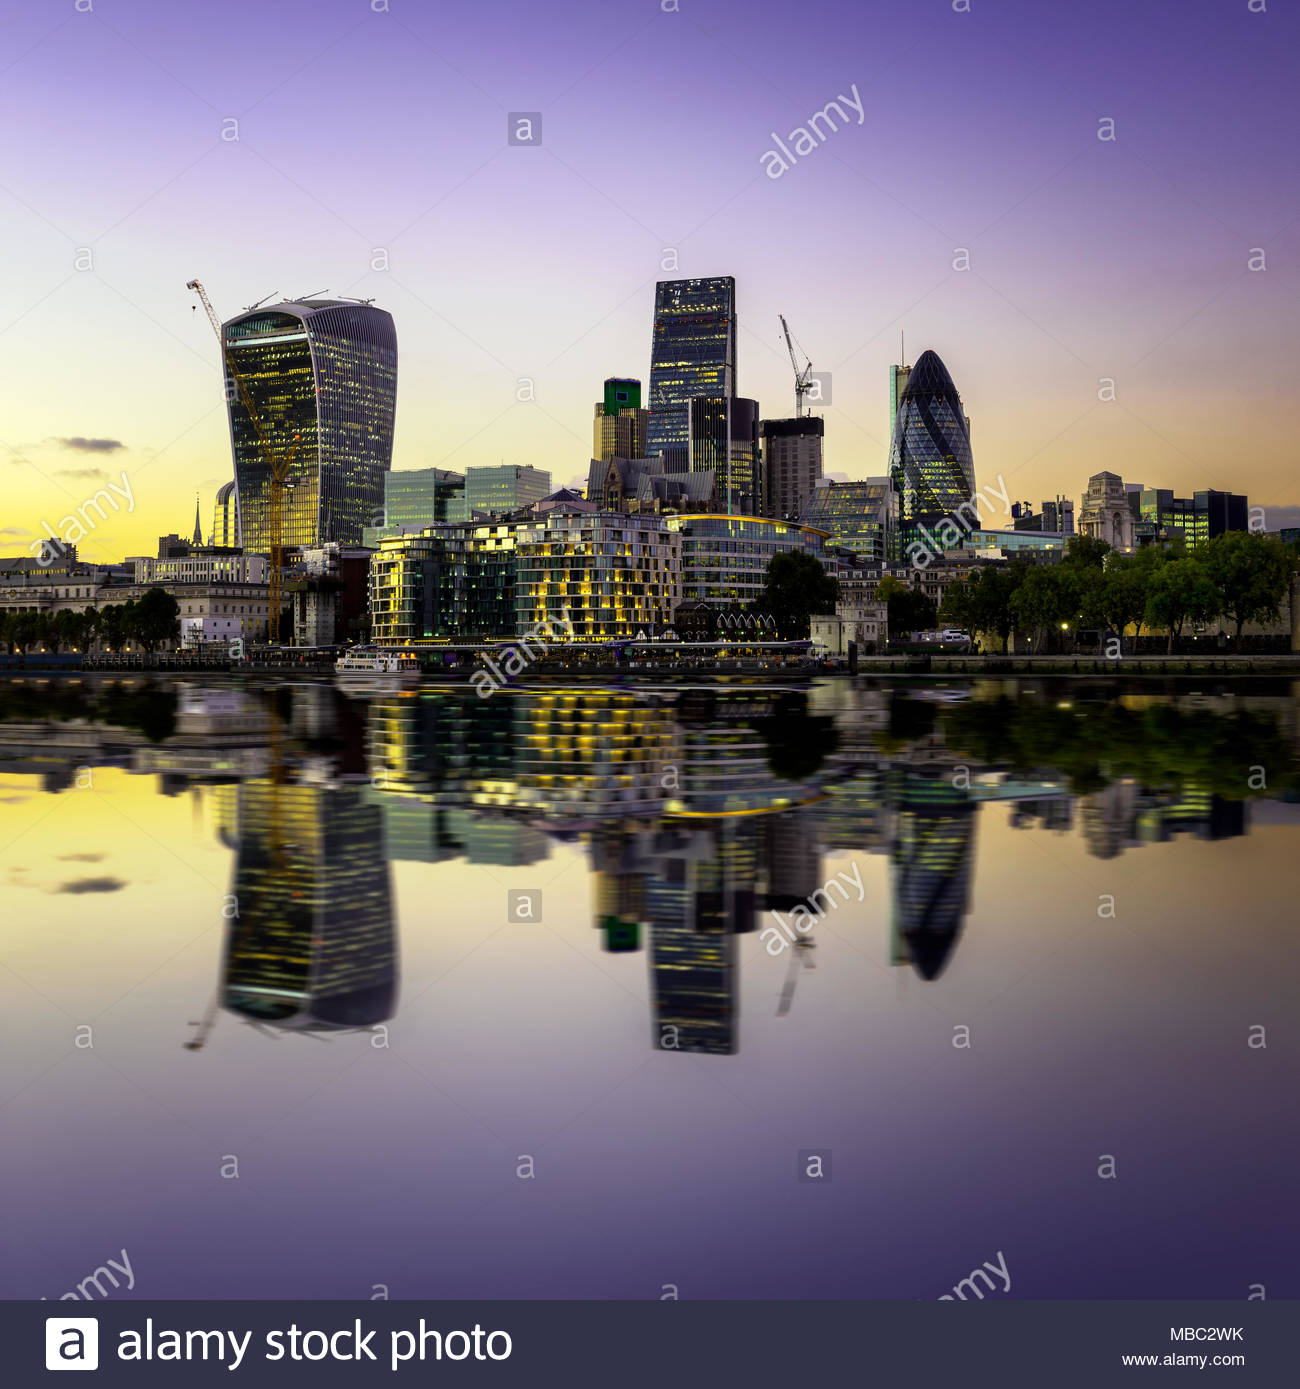 The bank district of central London with famous skyscrapers at sunset with amazing blue sky and reflection, London, United Kingdom - Stock Image